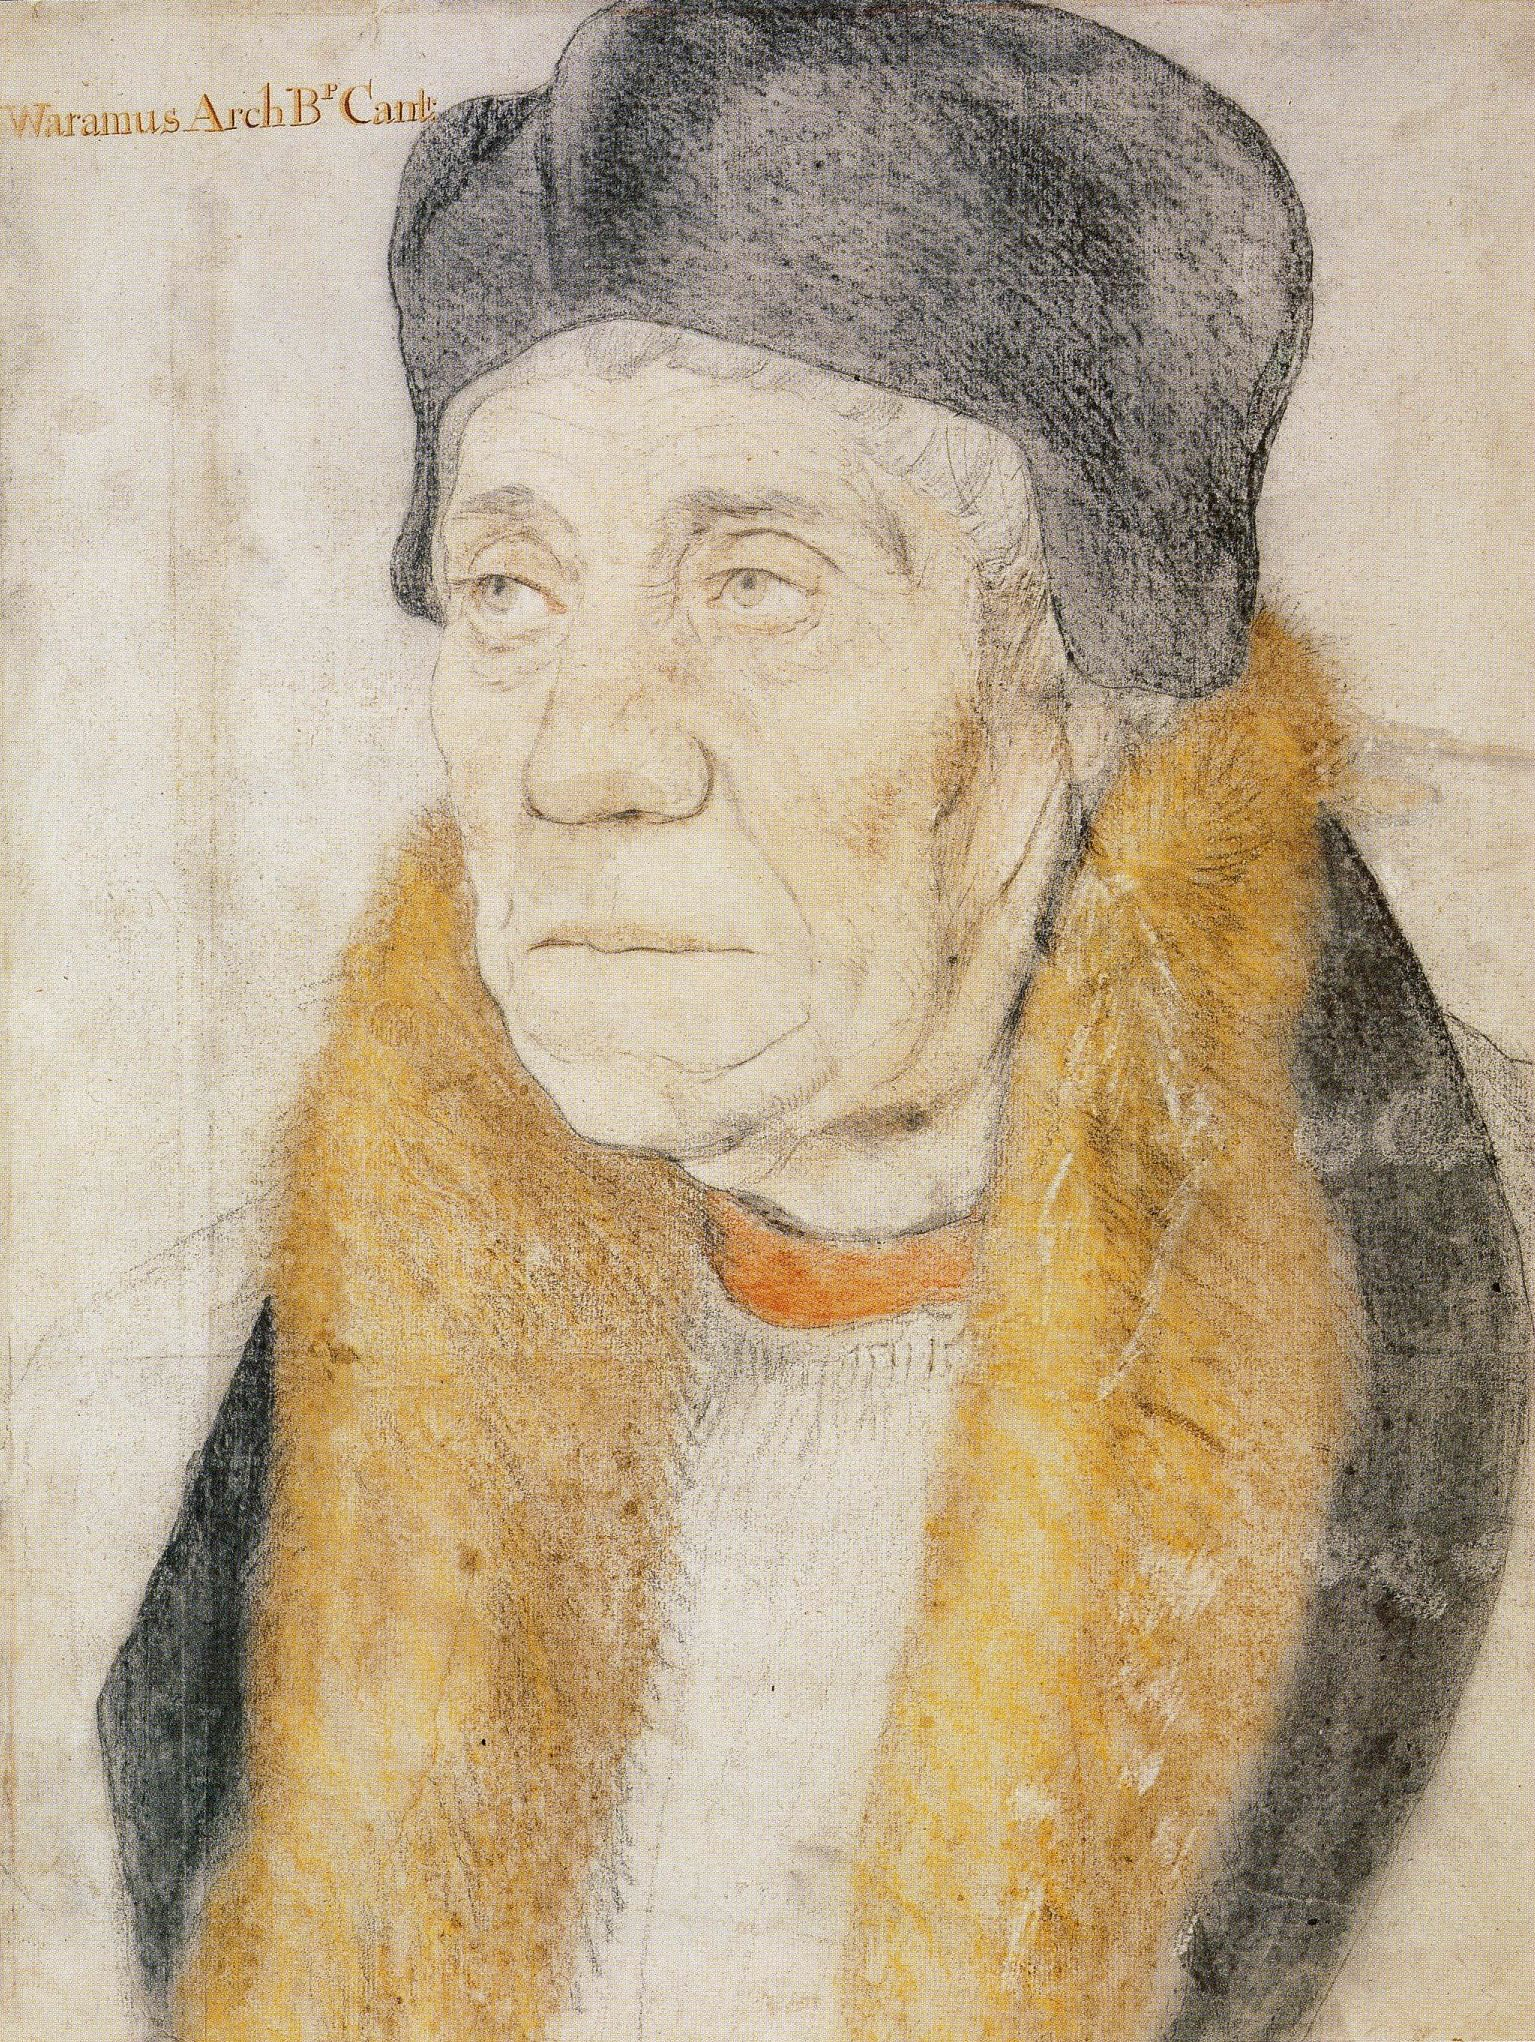 William Warham Archbishop Canterbury drawing by Hans Holbein the Younger